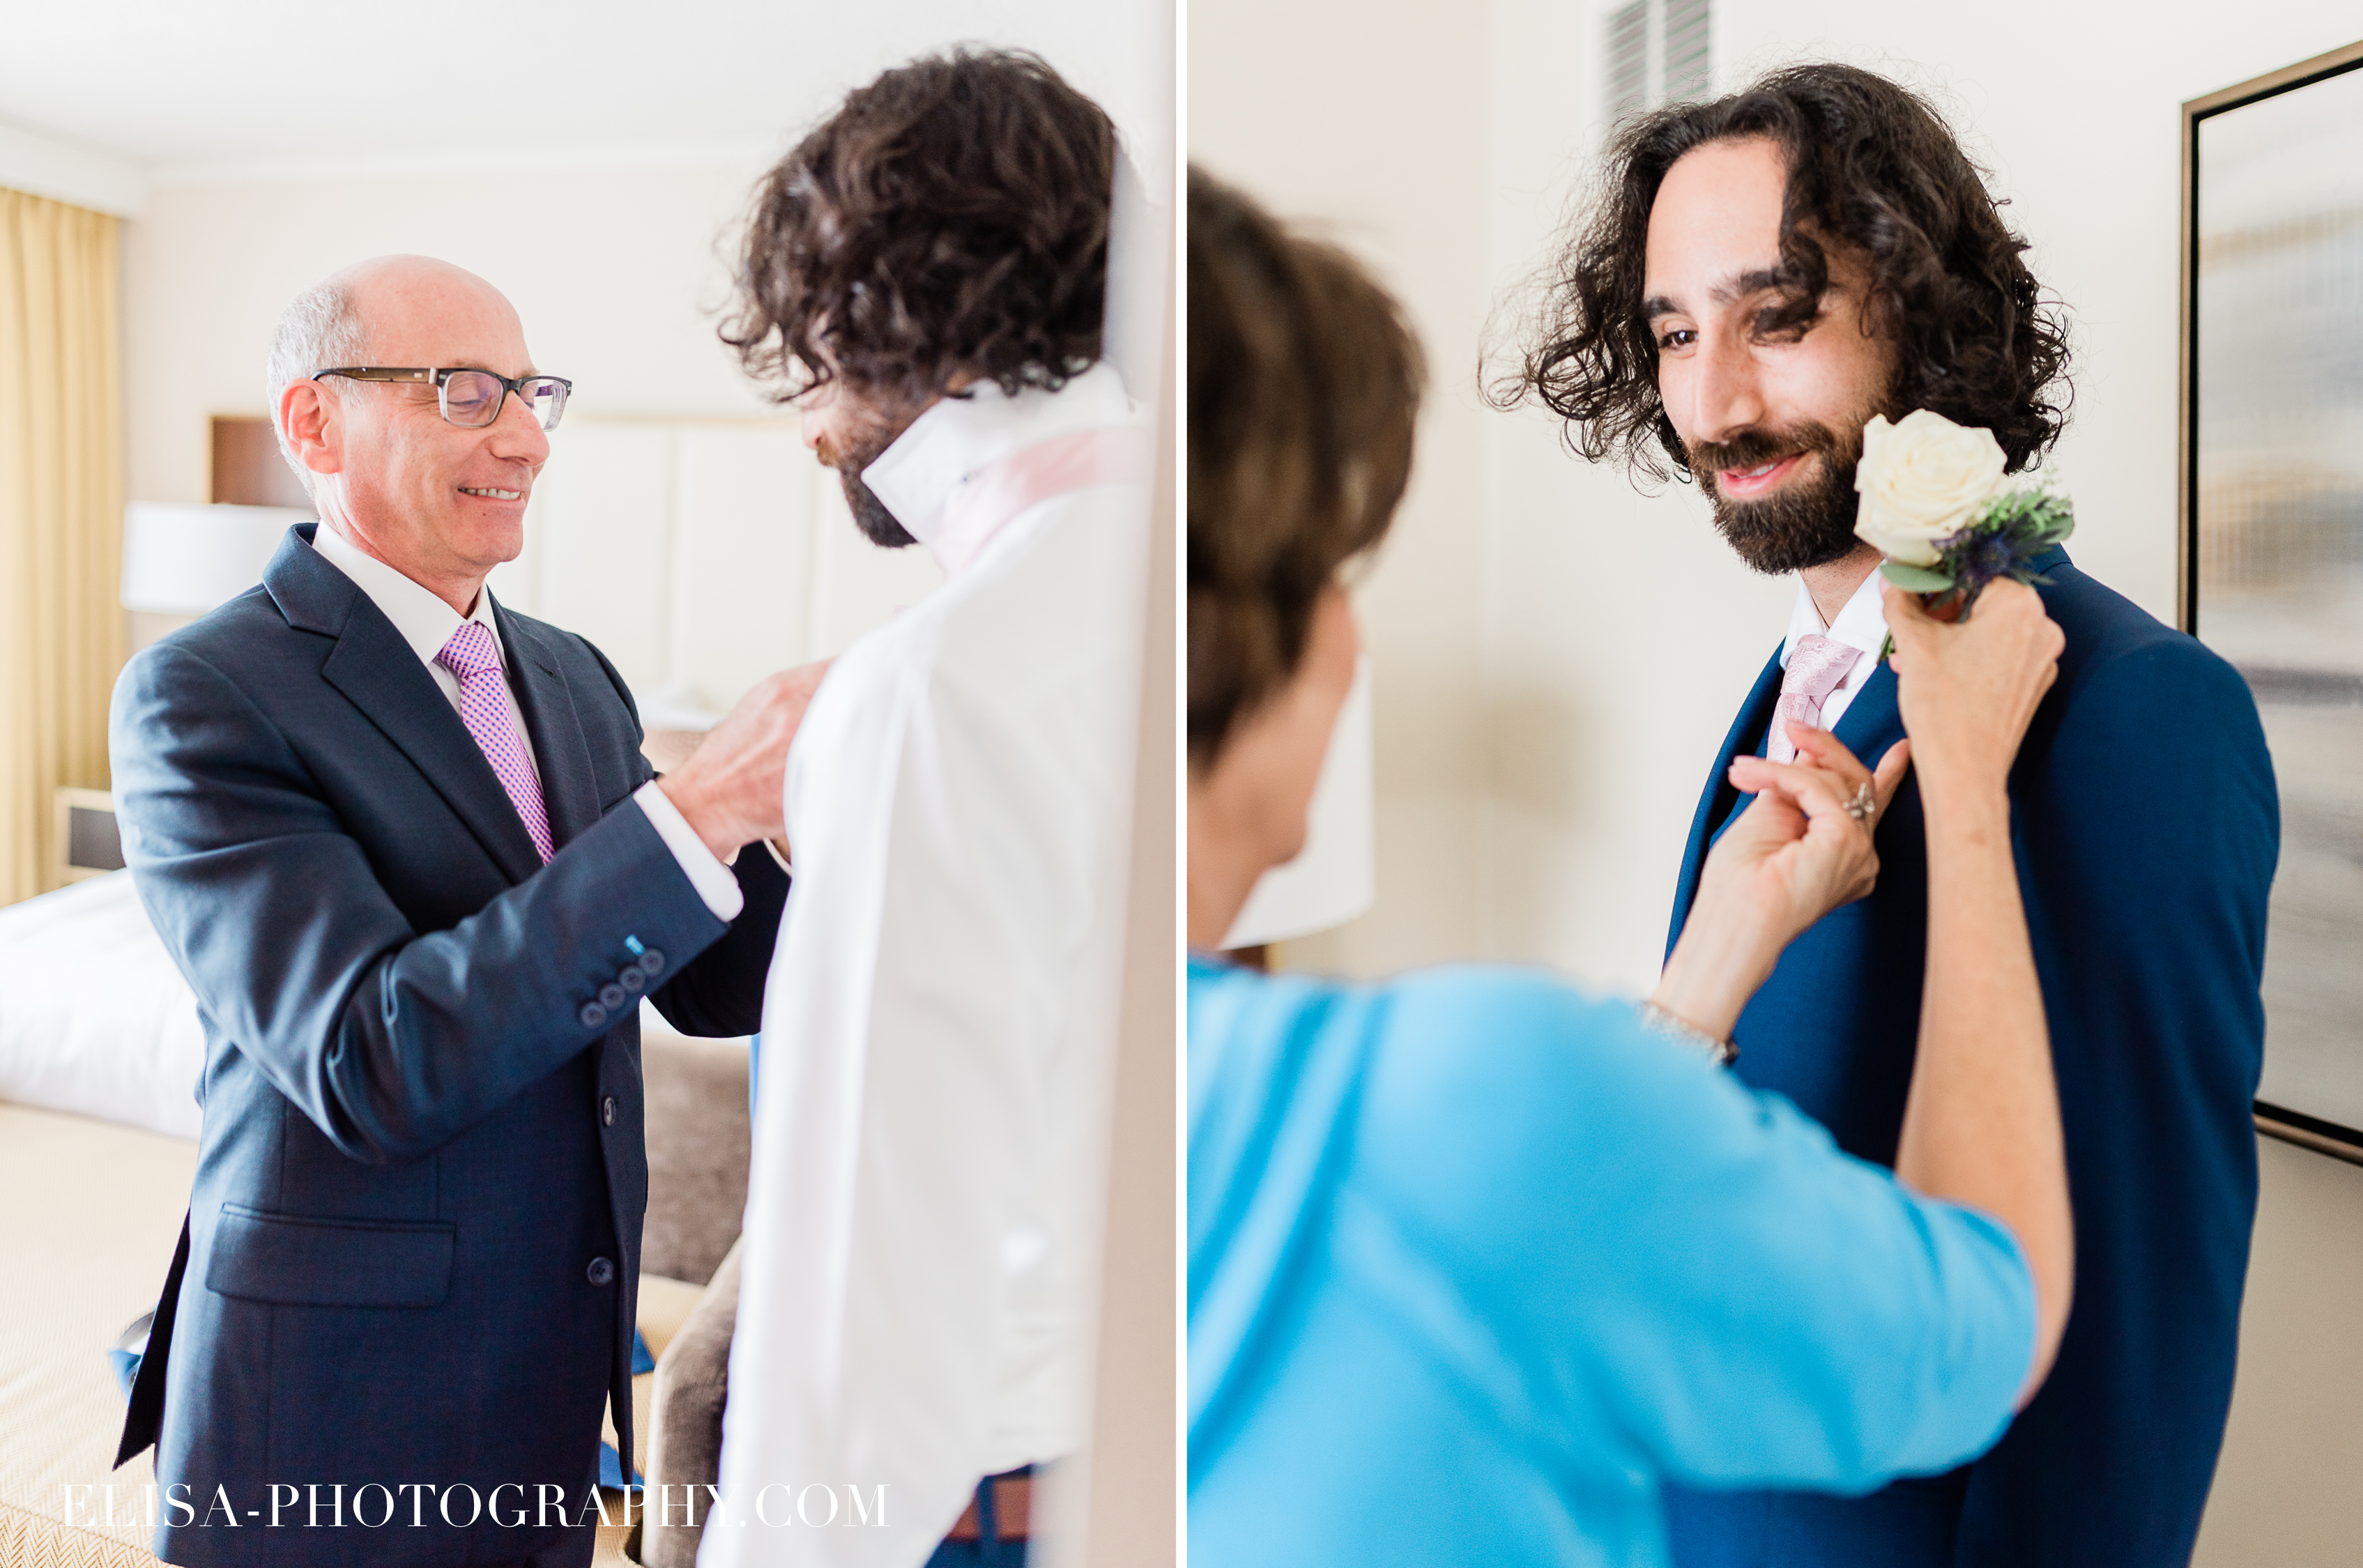 PHOTO mariage hotel omni montreal preparatifs marie groom elisa photographe - An elegant wedding under the marquee at the Forest and Stream Club in Montreal